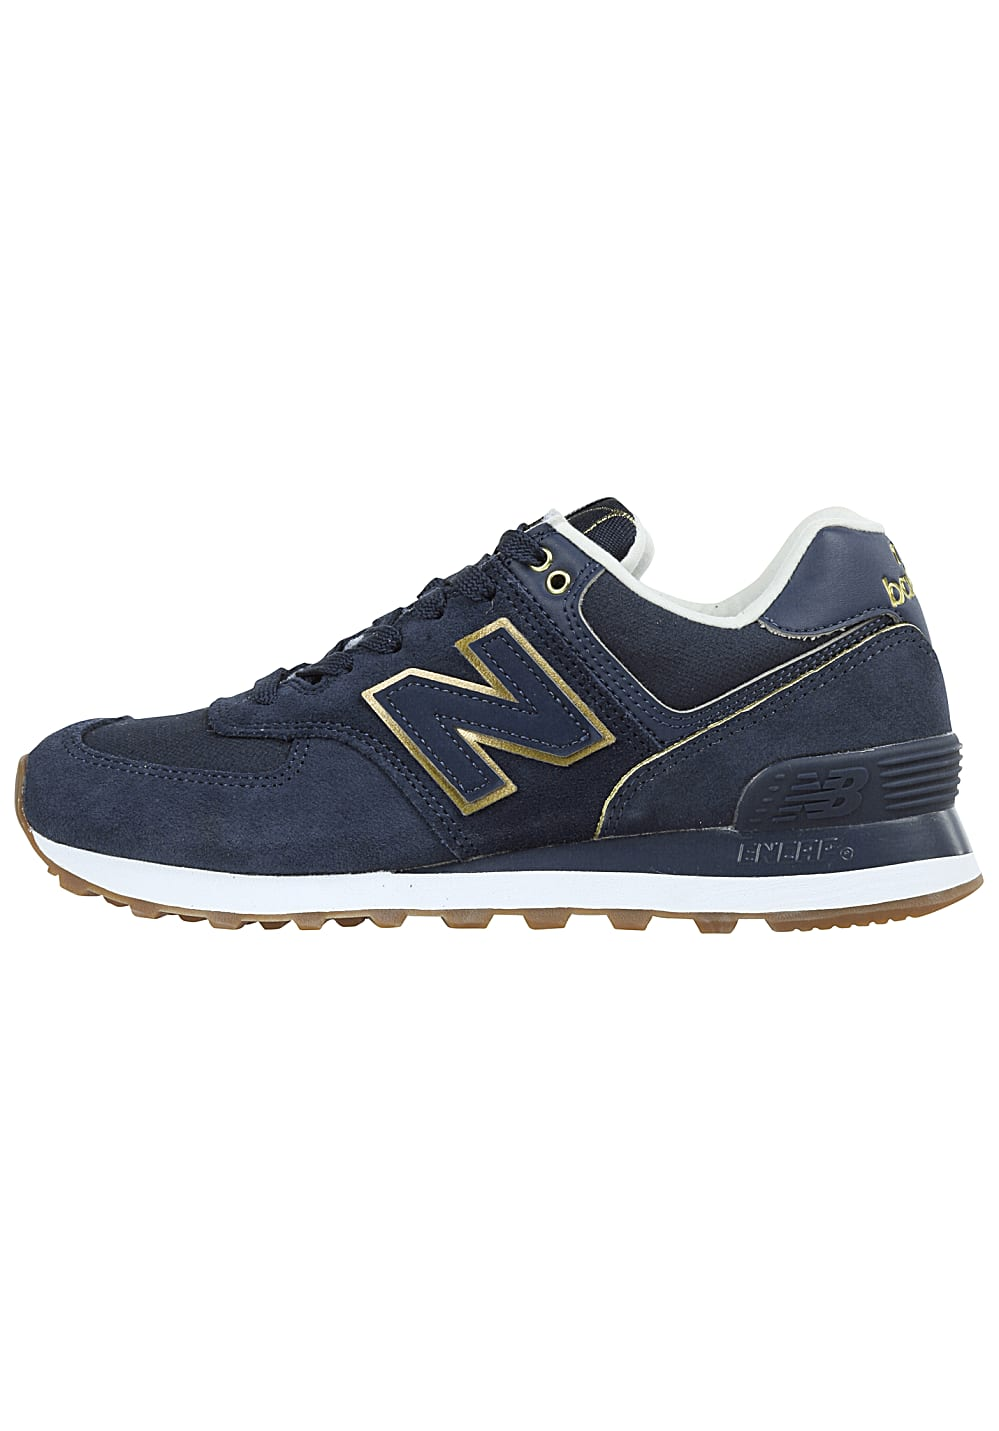 NEW BALANCE WL574 B - Sneaker für Damen - Blau - Planet Sports